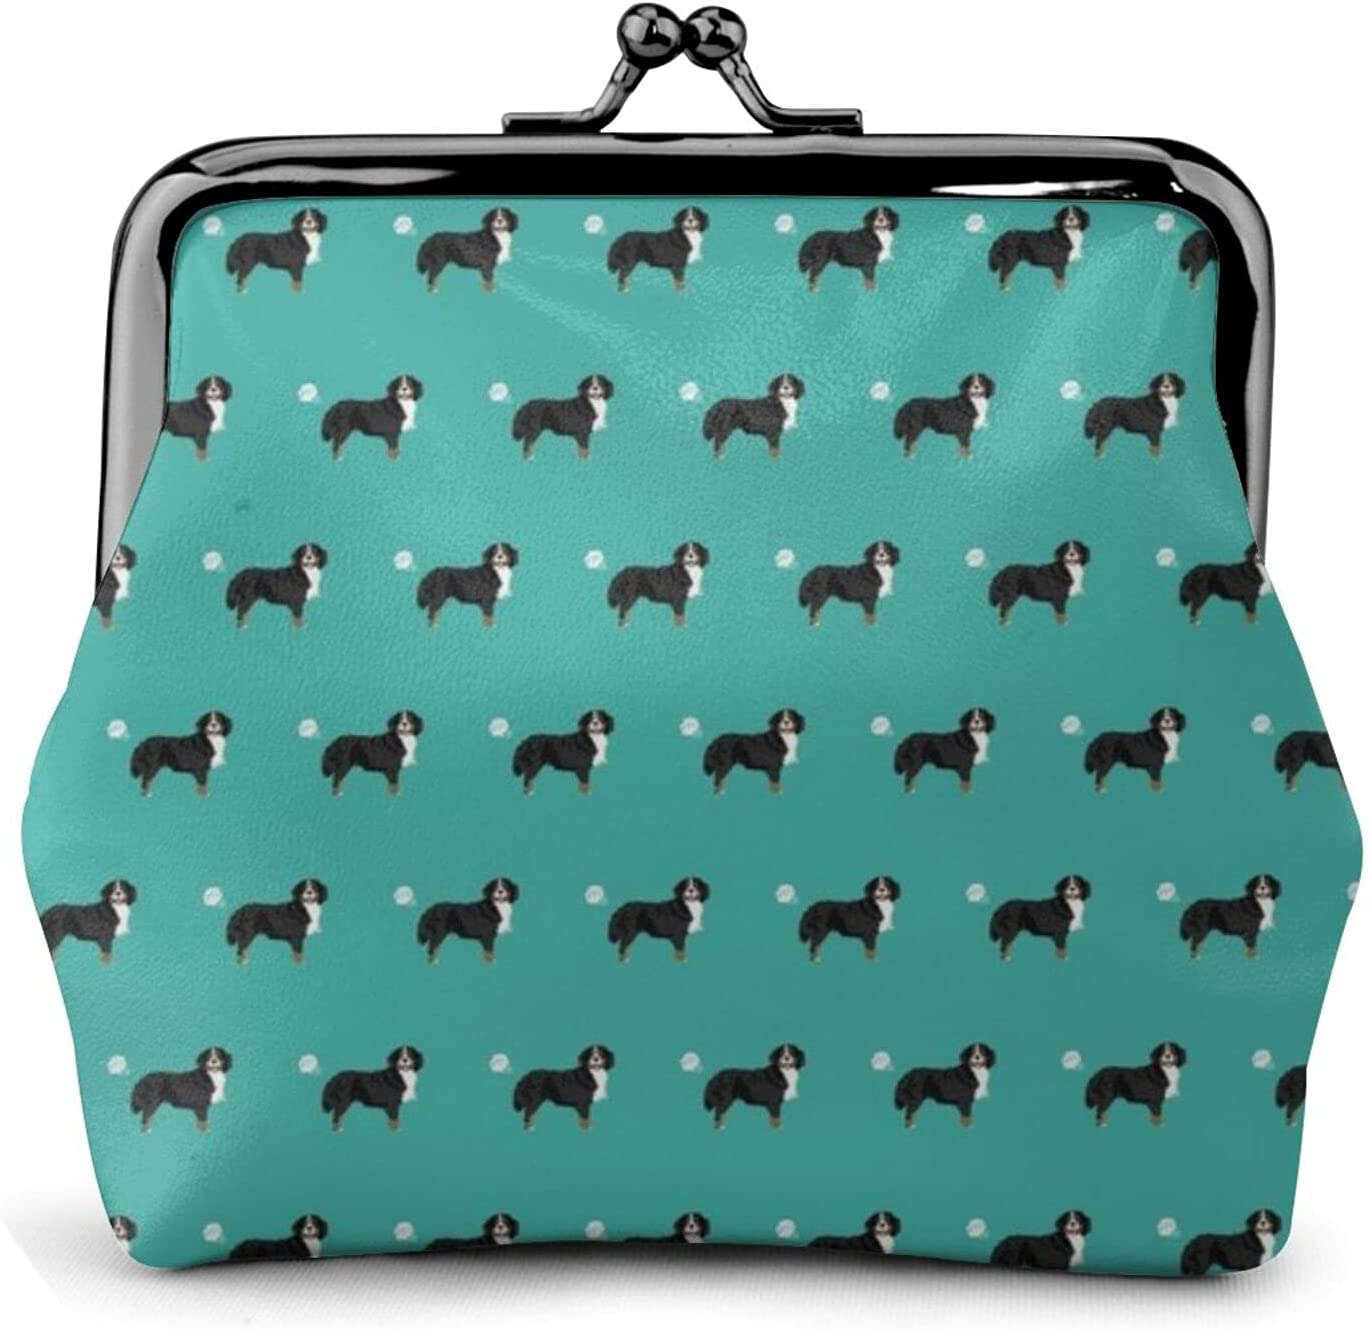 Bernese Mountain Dog 426 Coin Purse Retro Money Pouch with Kiss-lock Buckle Small Wallet for Women and Girls